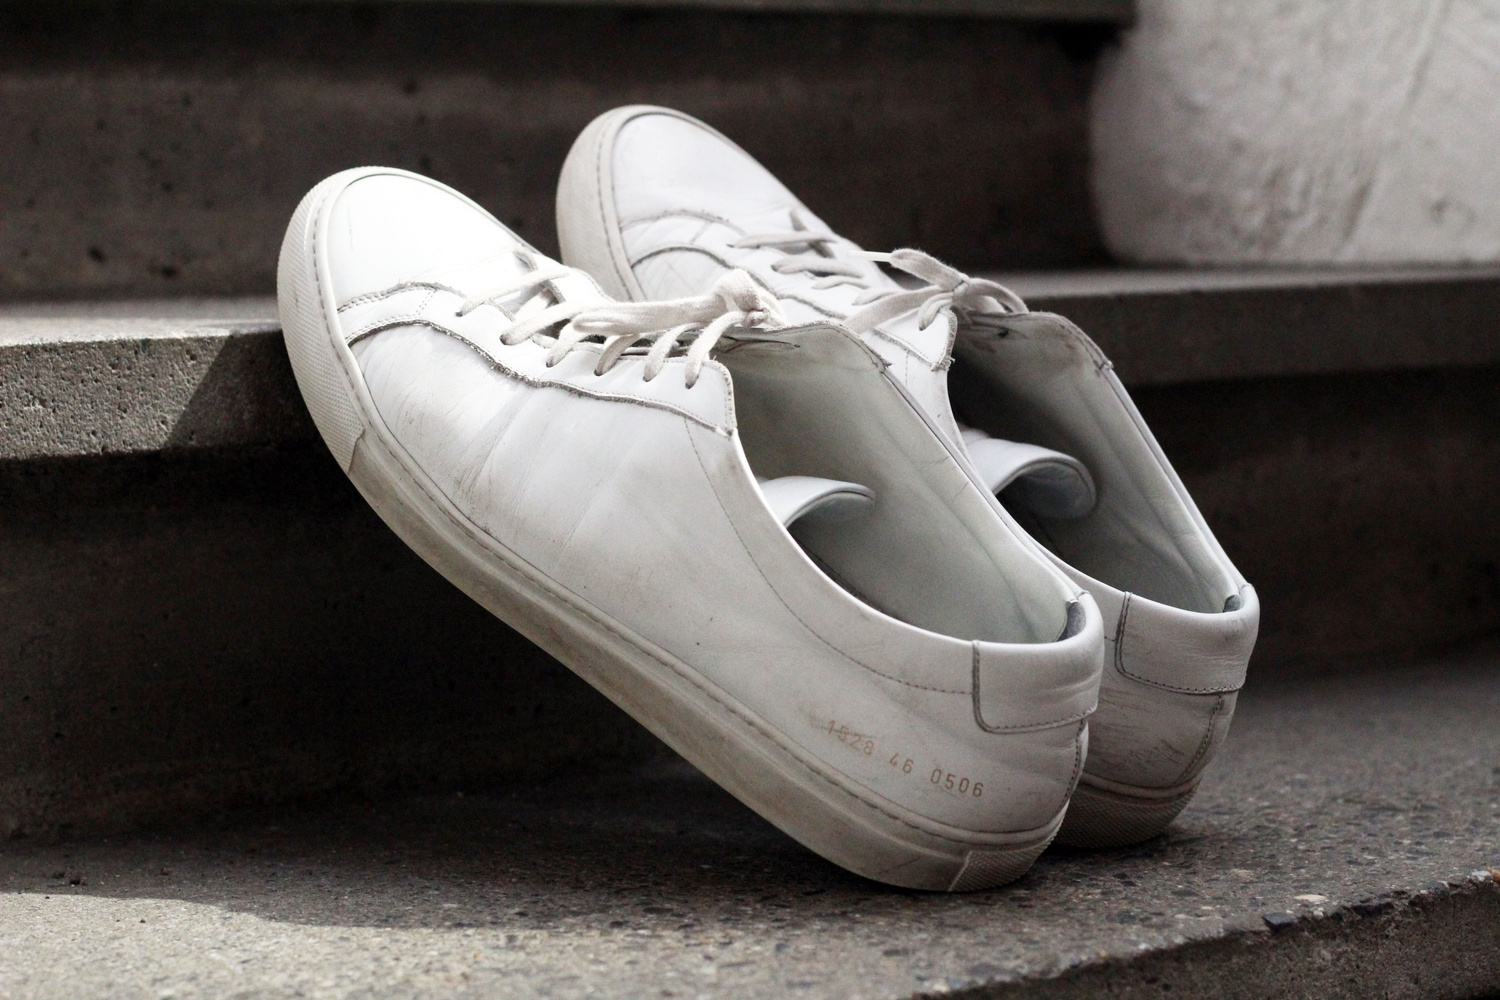 Alan R. Dai '21 has $350 Common Projects sneakers featuring gold numbers printed near the heel.